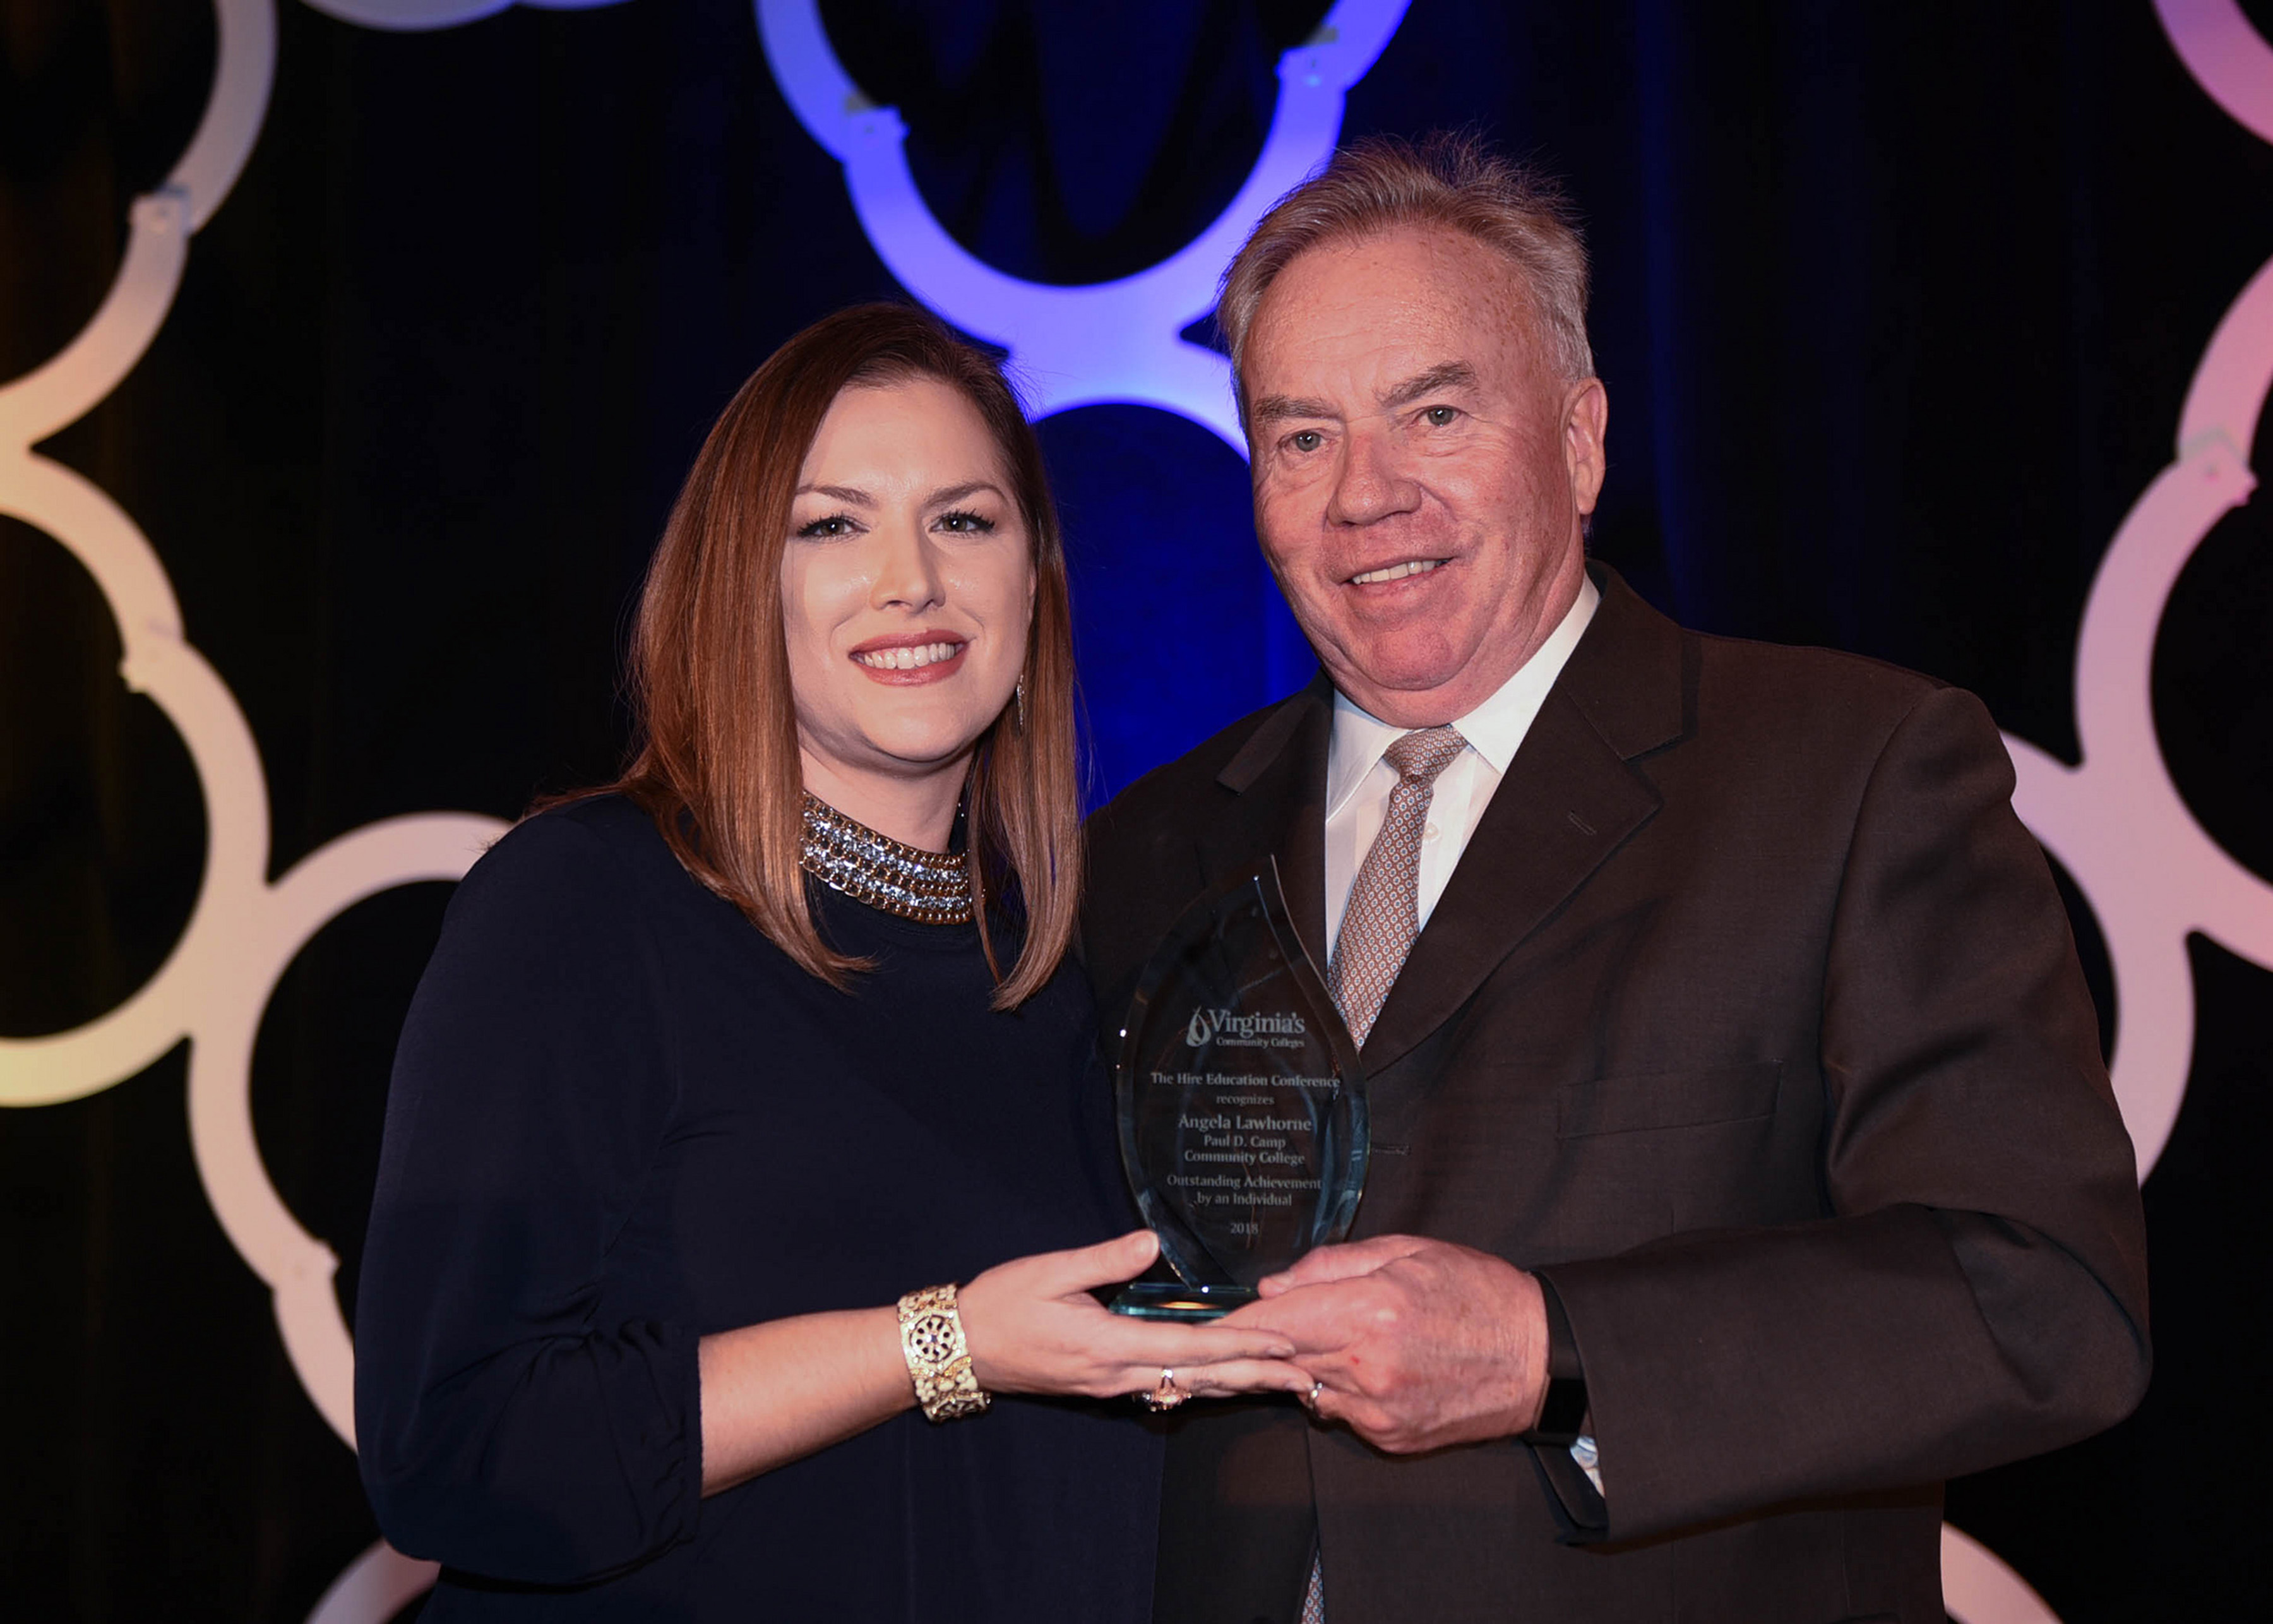 Angela Lawhorne of PDCCC honored for workforce achievements